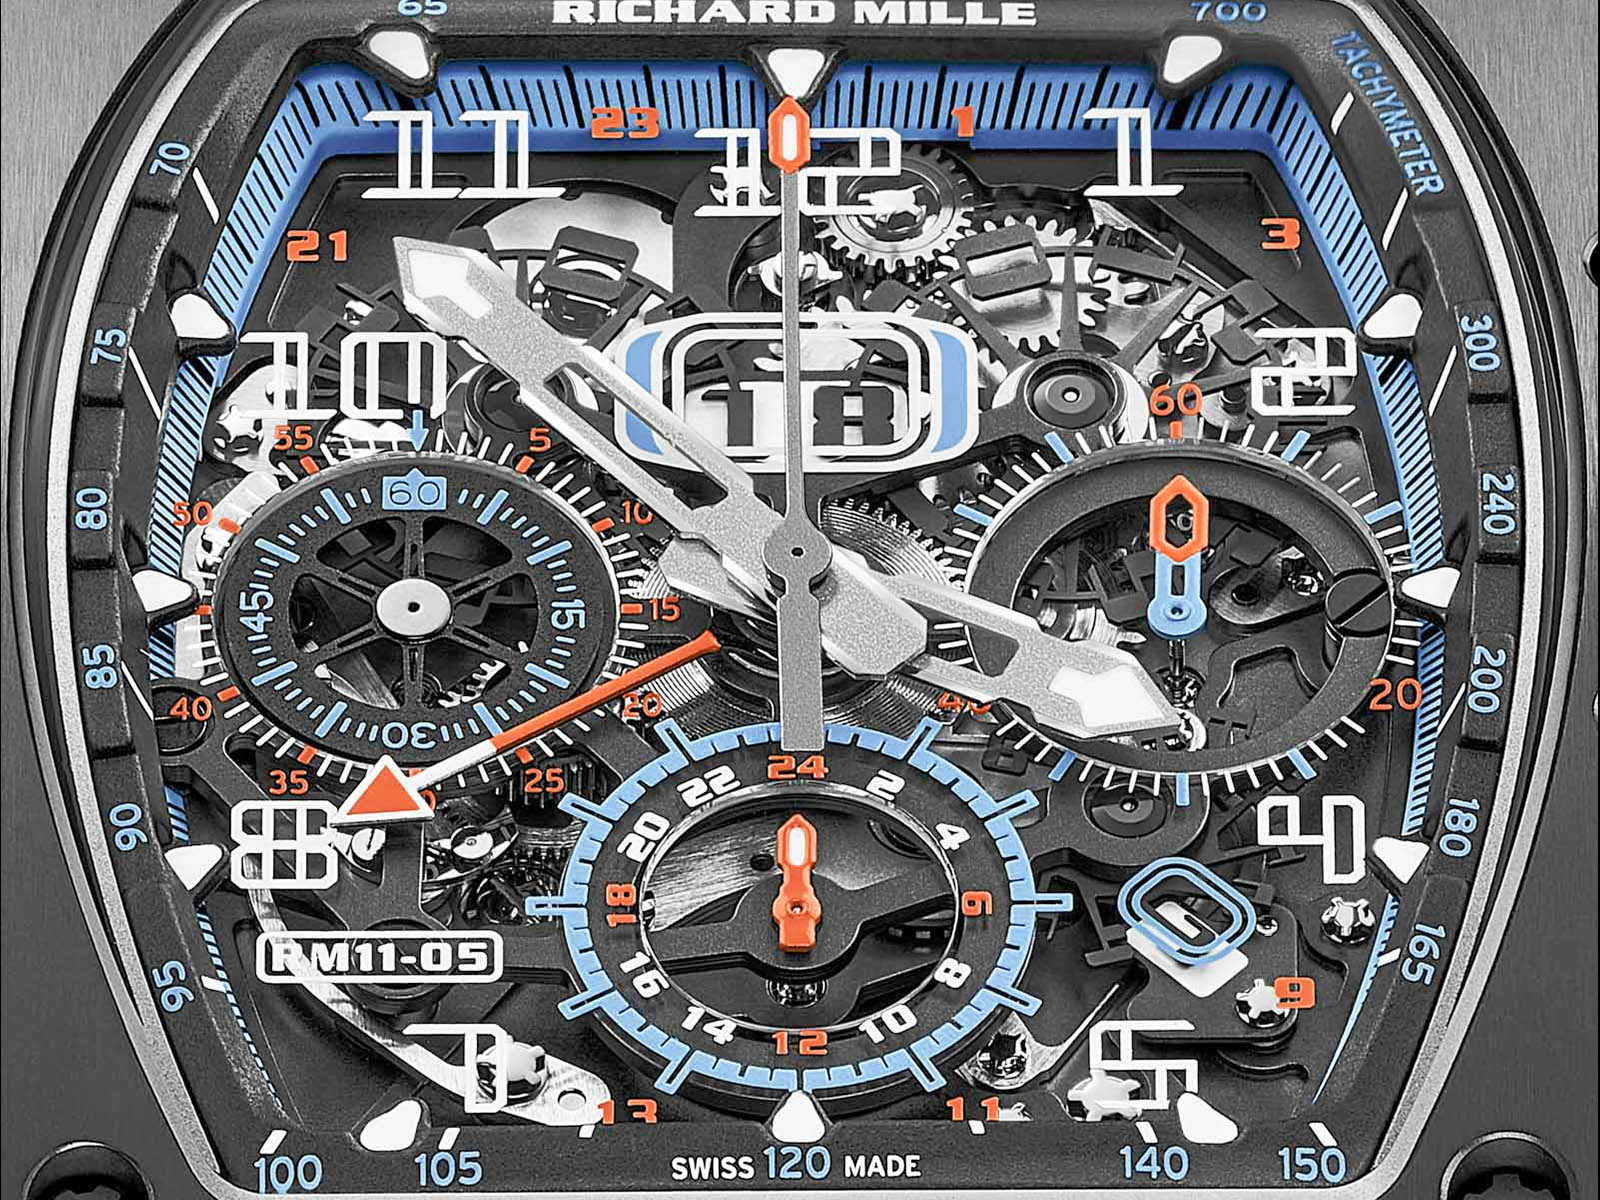 rm-11-05-richard-mille-automatic-flyback-chronograph-gmt-cermet-7.jpg